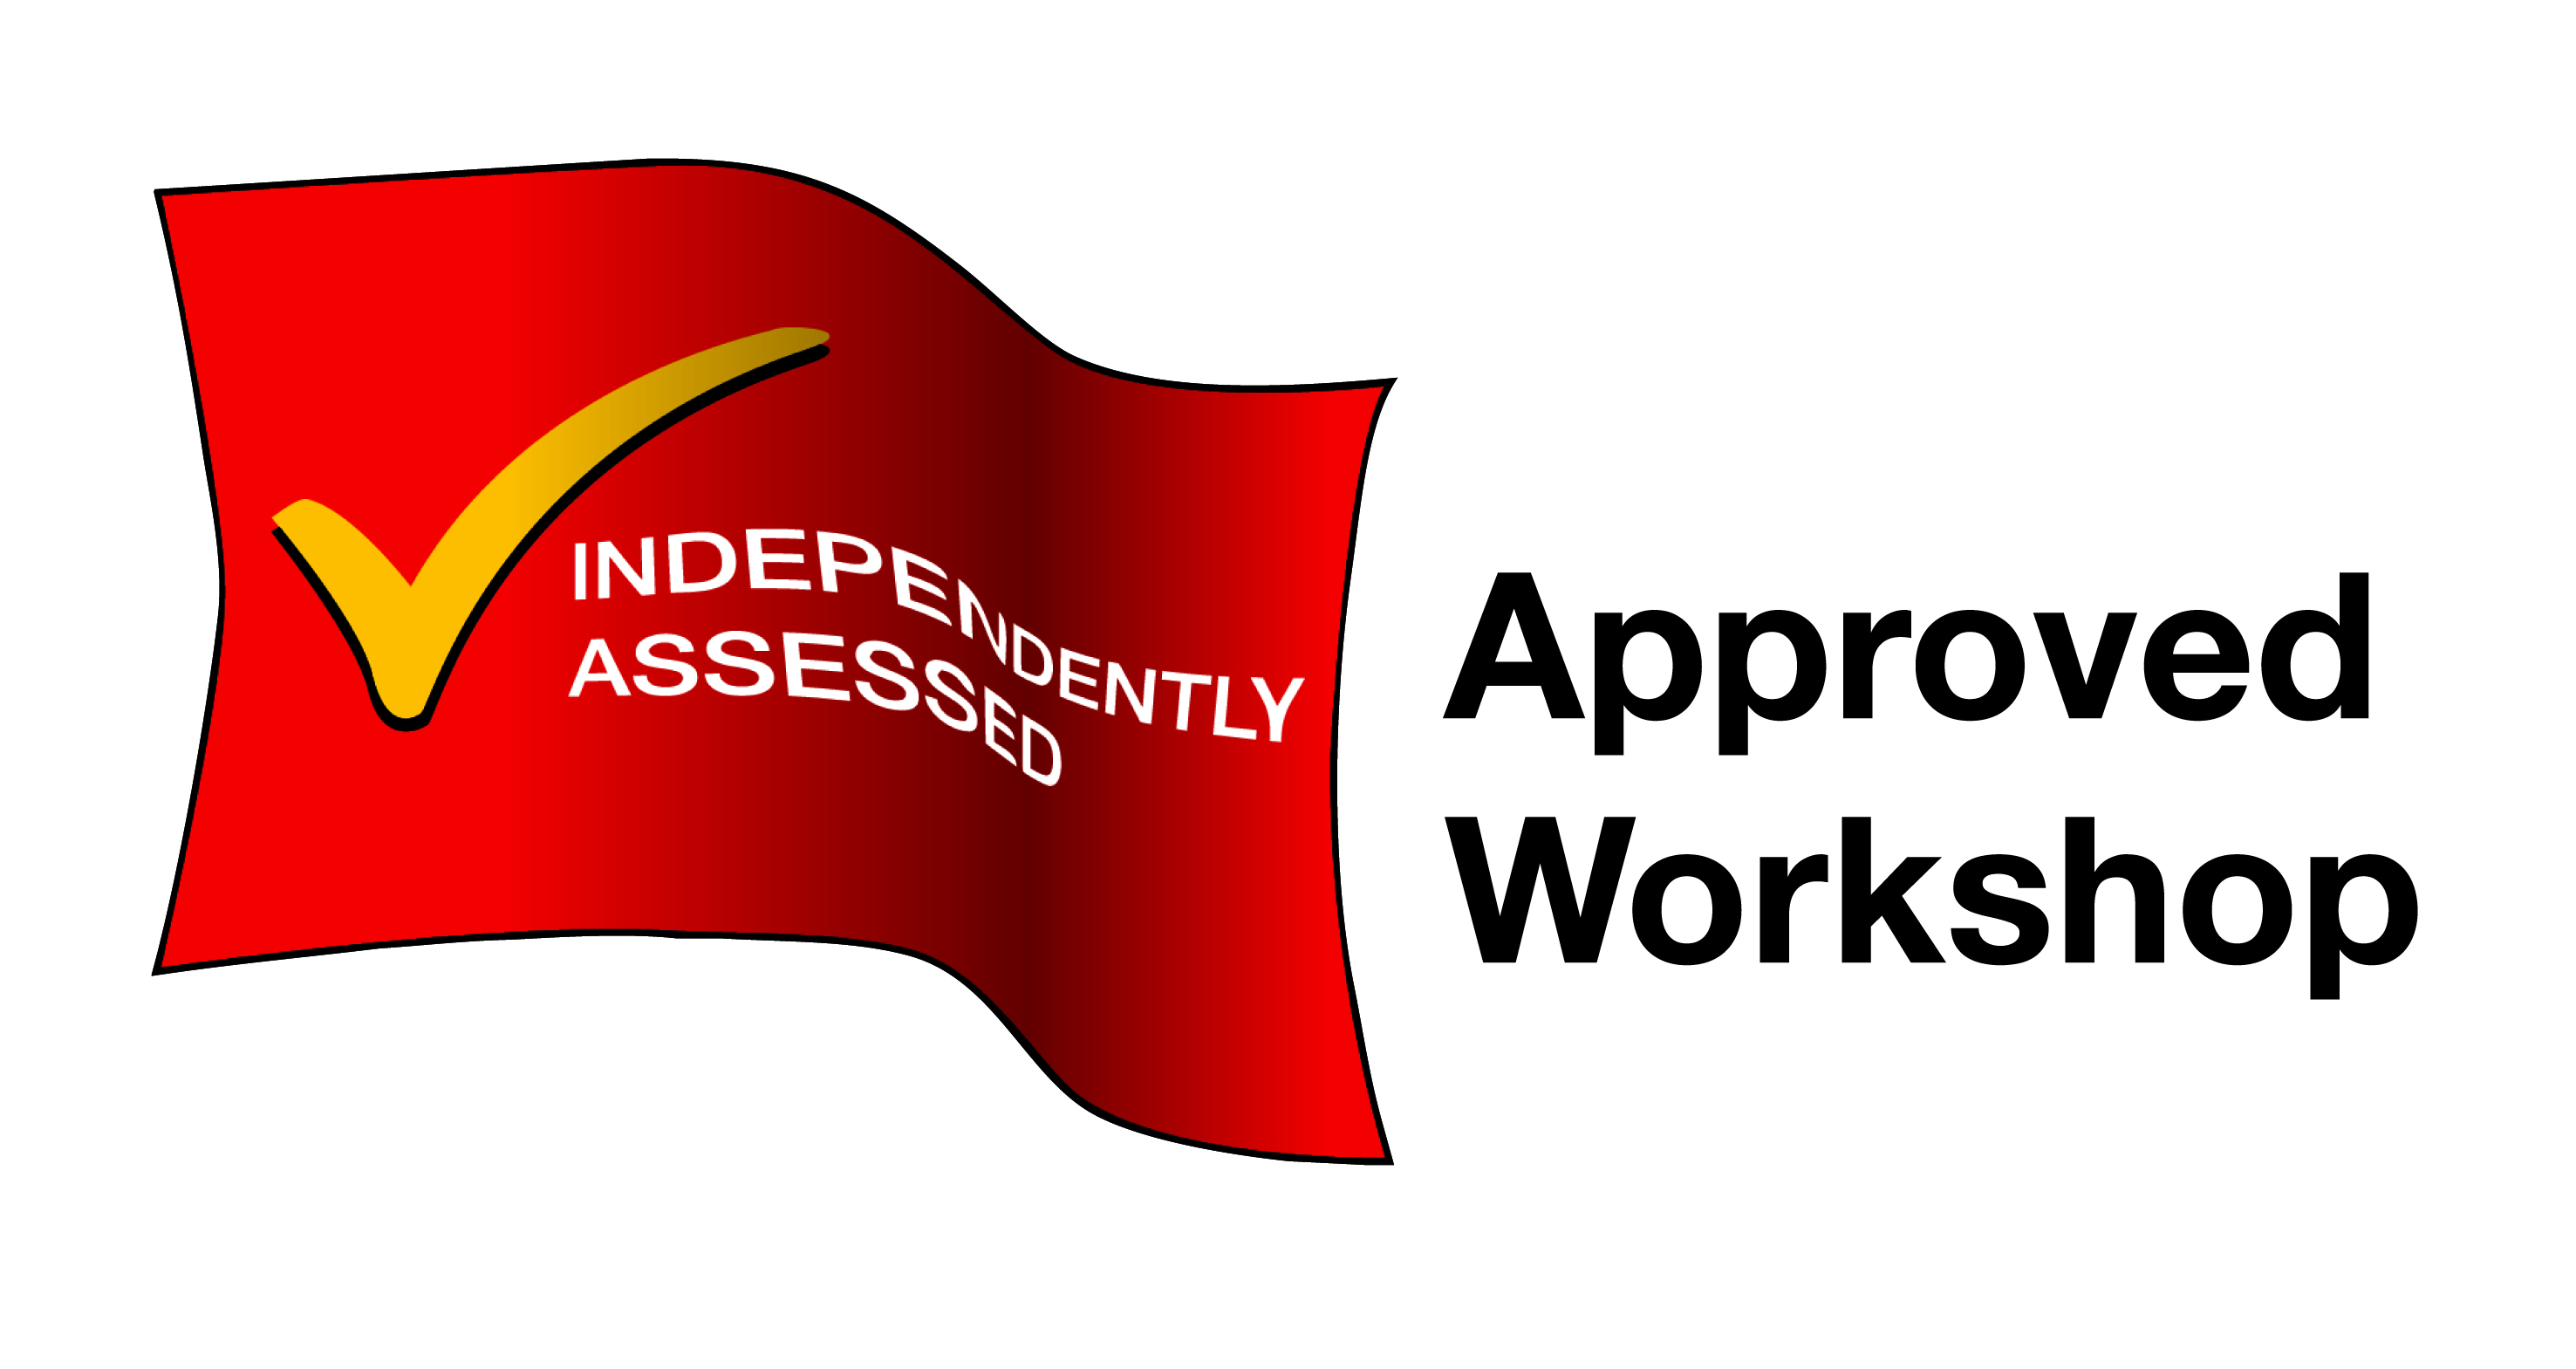 Approved Workshop